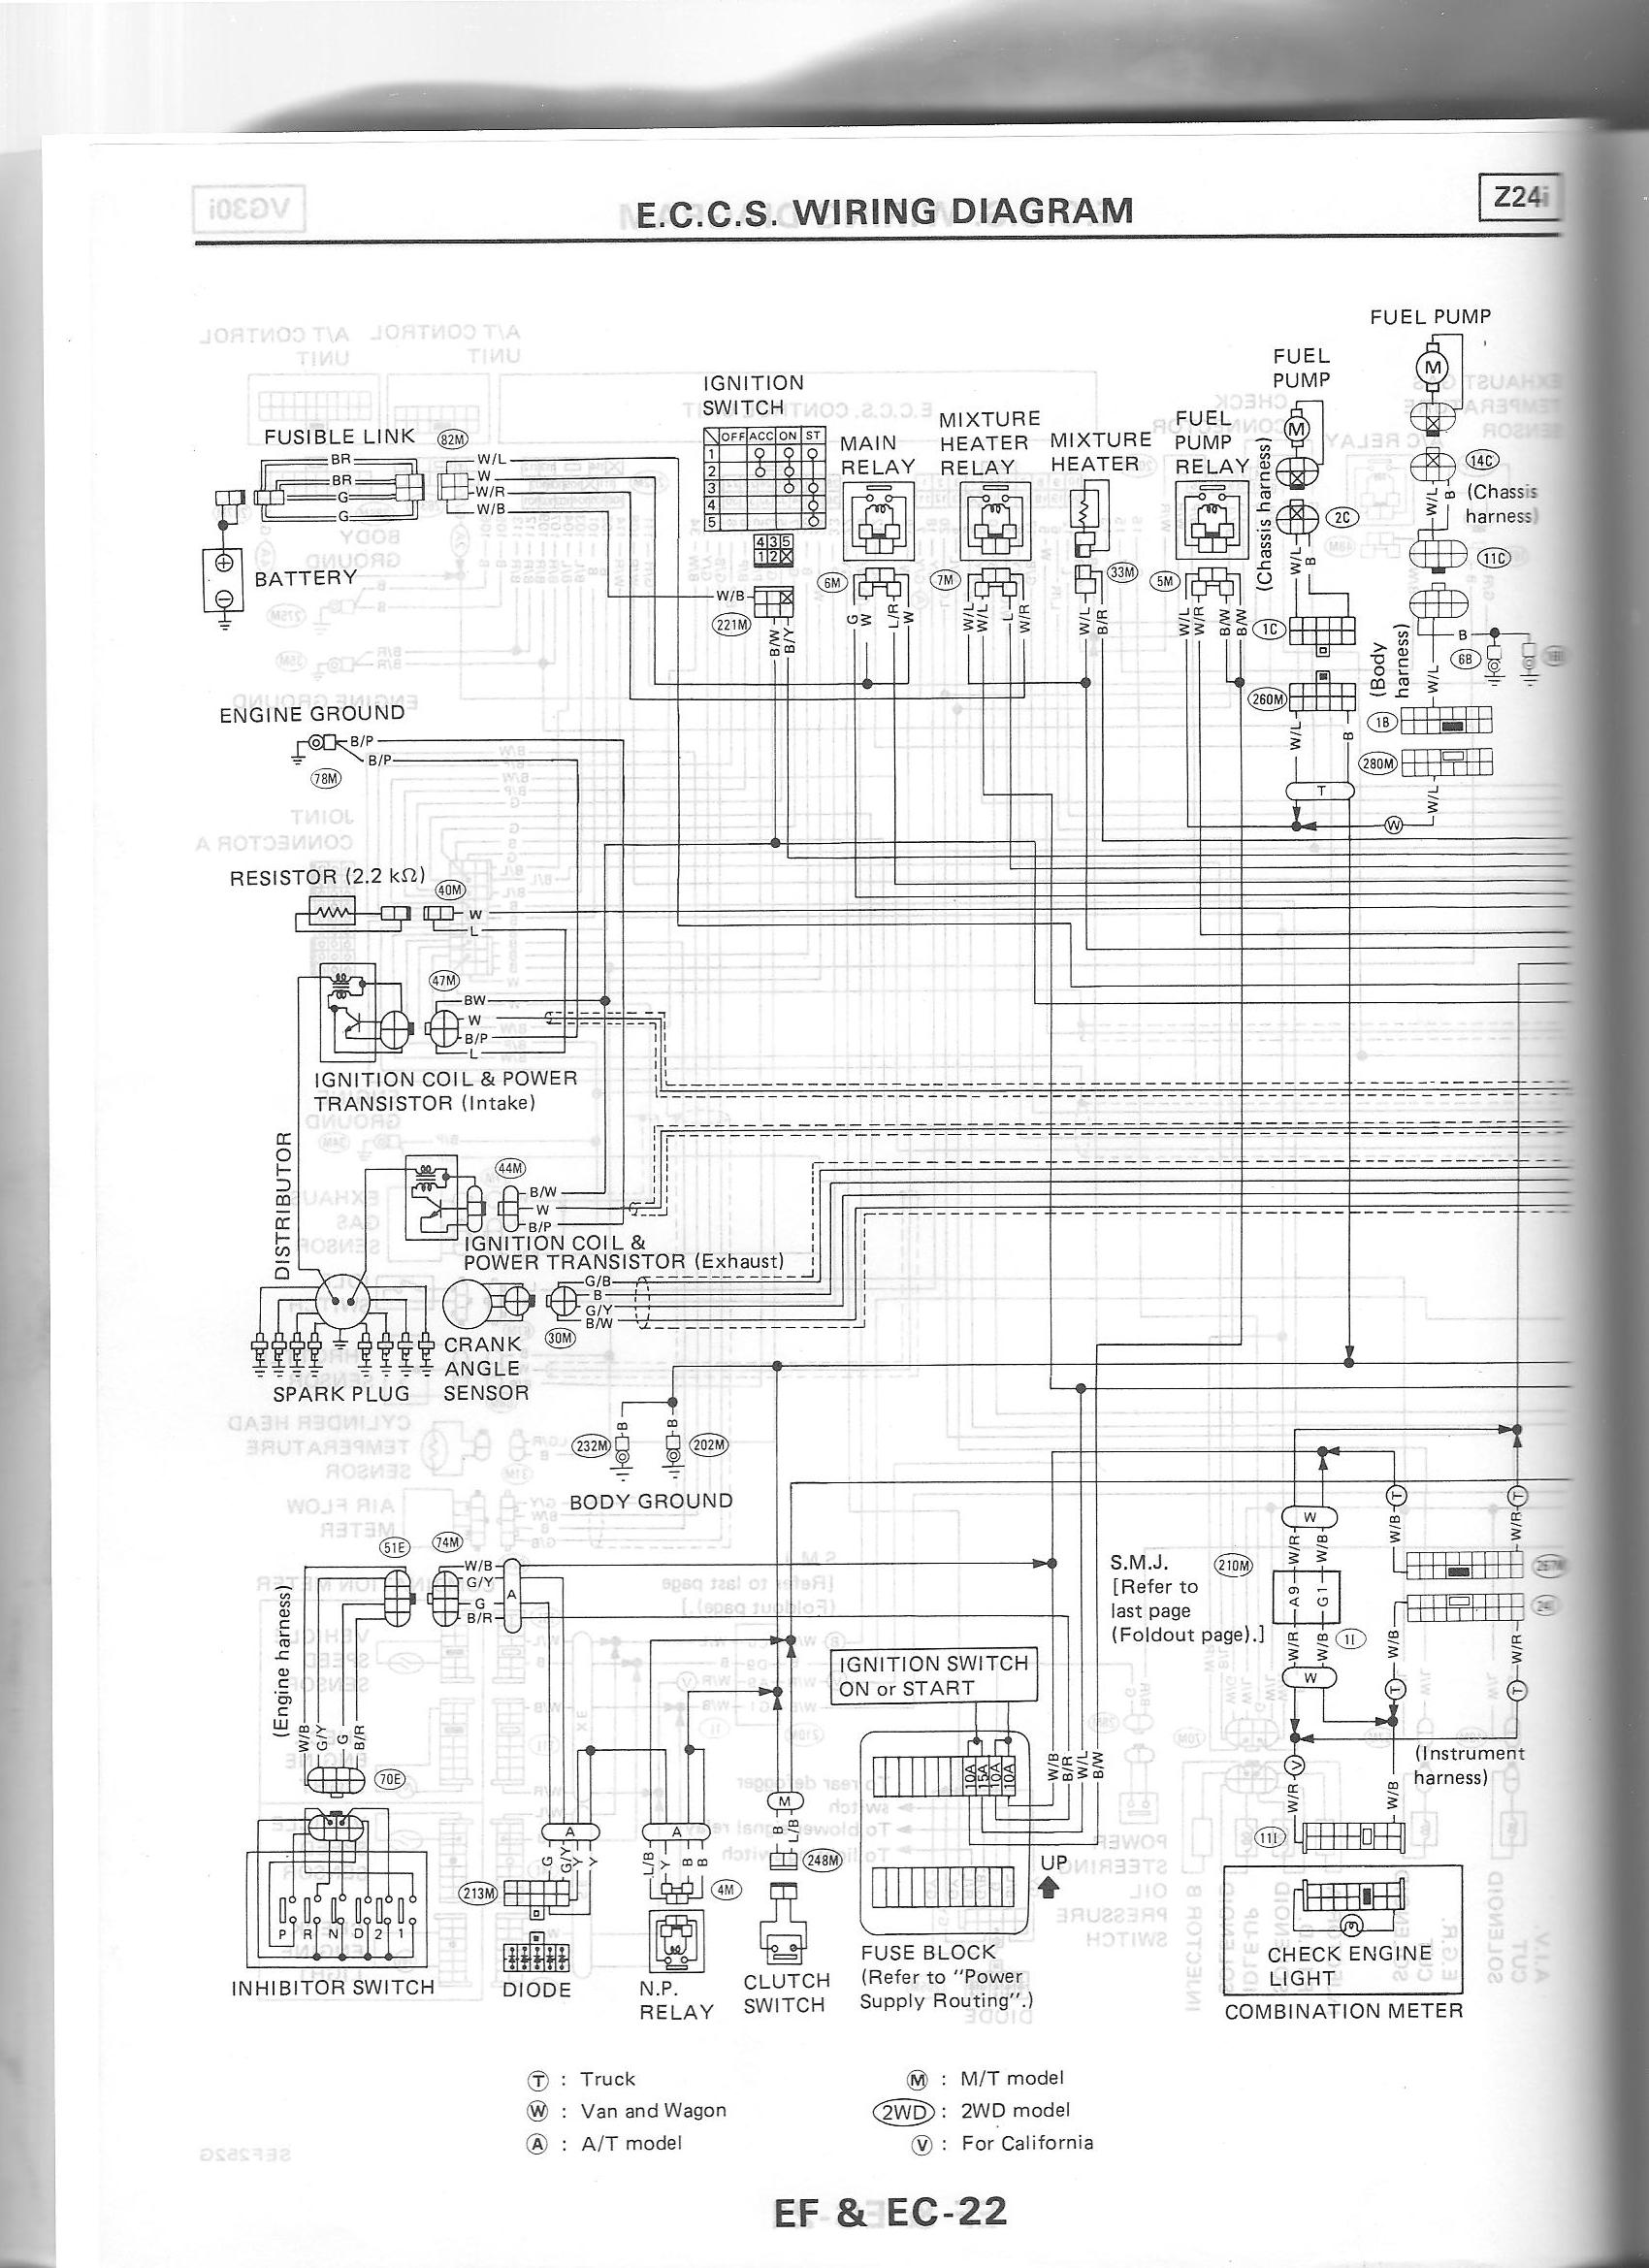 wiring1_88 nissan nut Turbo Diagram at panicattacktreatment.co